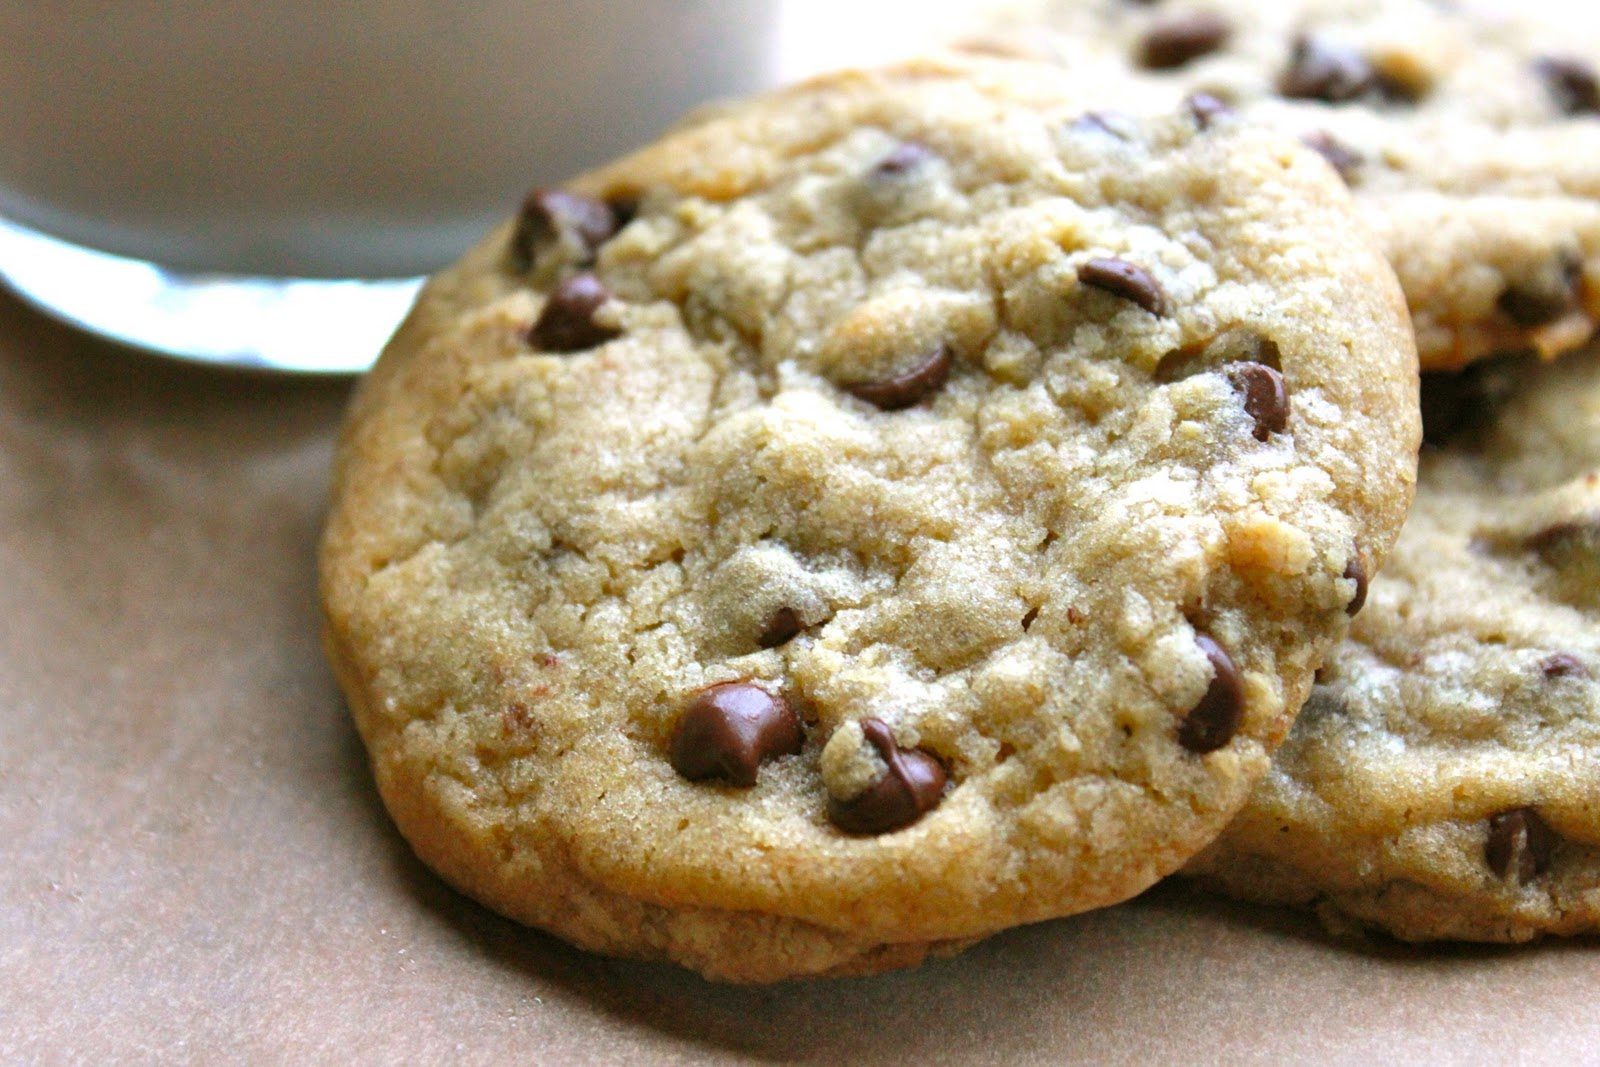 Sugar free chocolate chip cookie recipes - Food next recipes